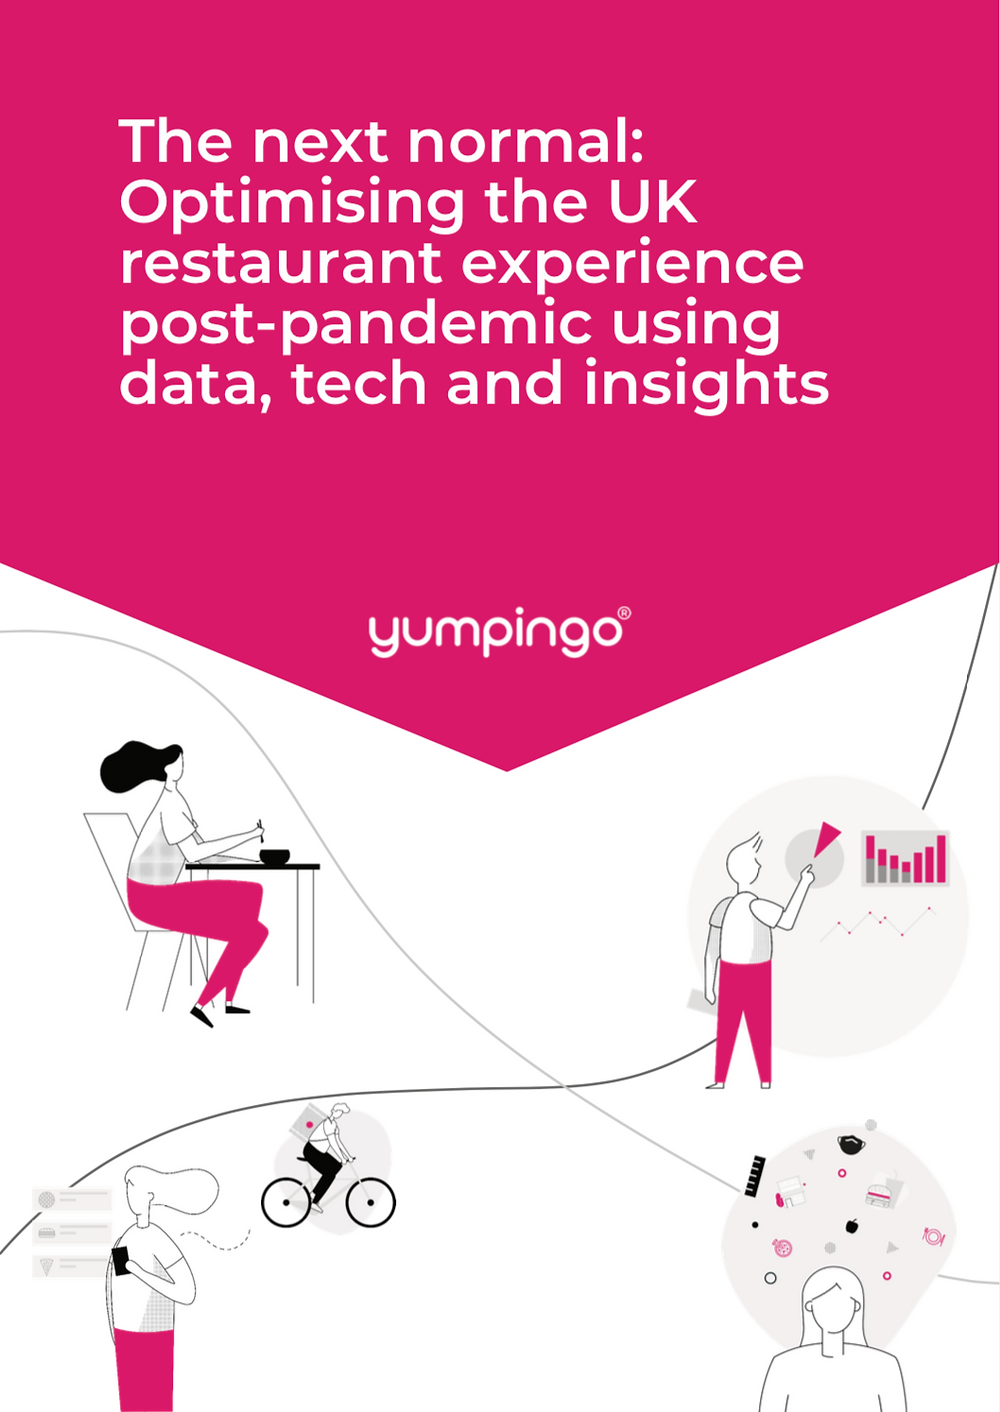 The next normal: Optimising the UK restaurant experience post-pandemic using data, tech and insights